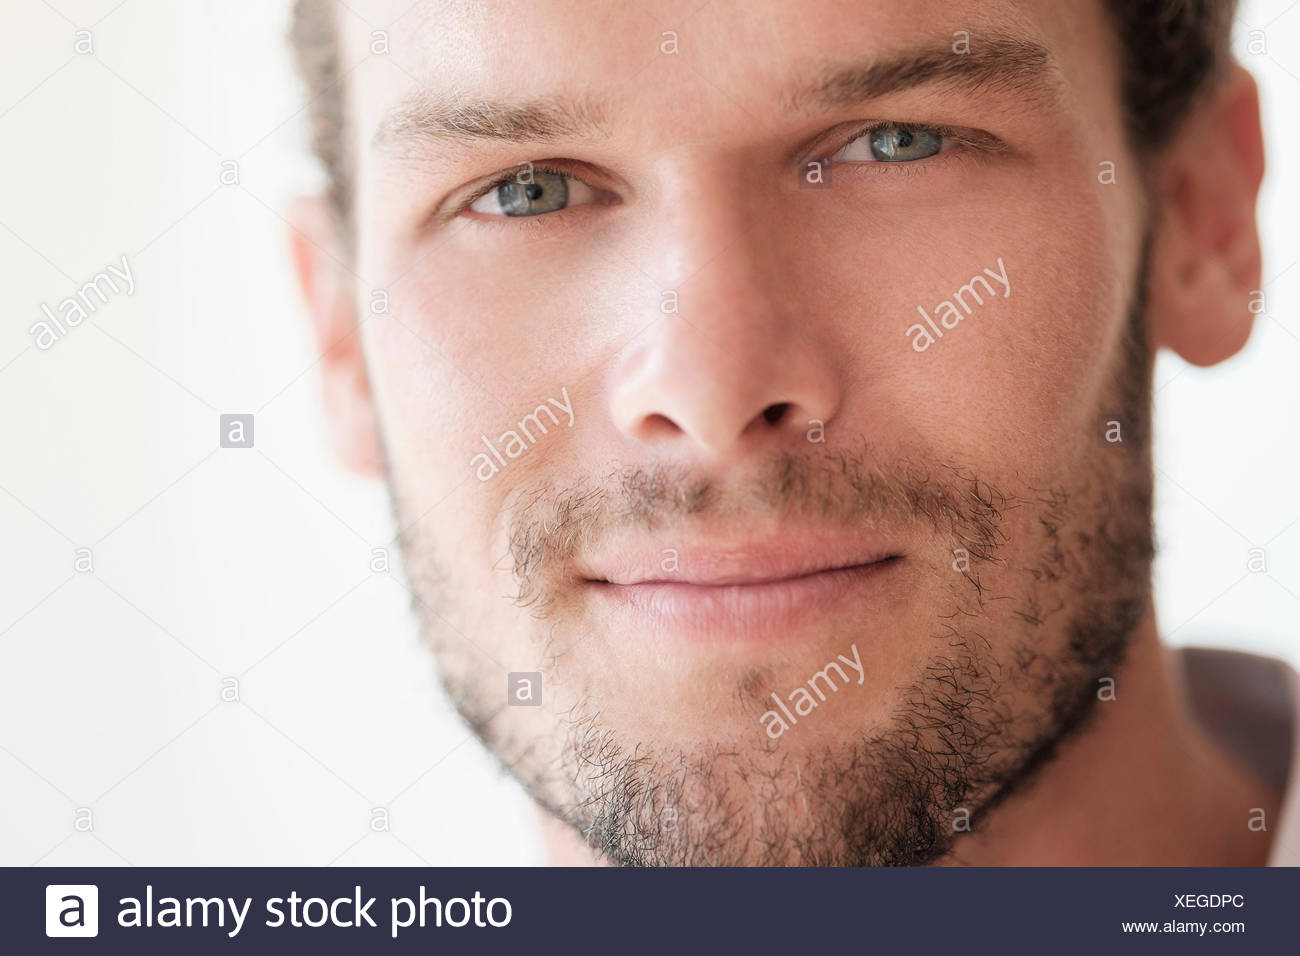 Portrait of mid-adult man - Stock Image